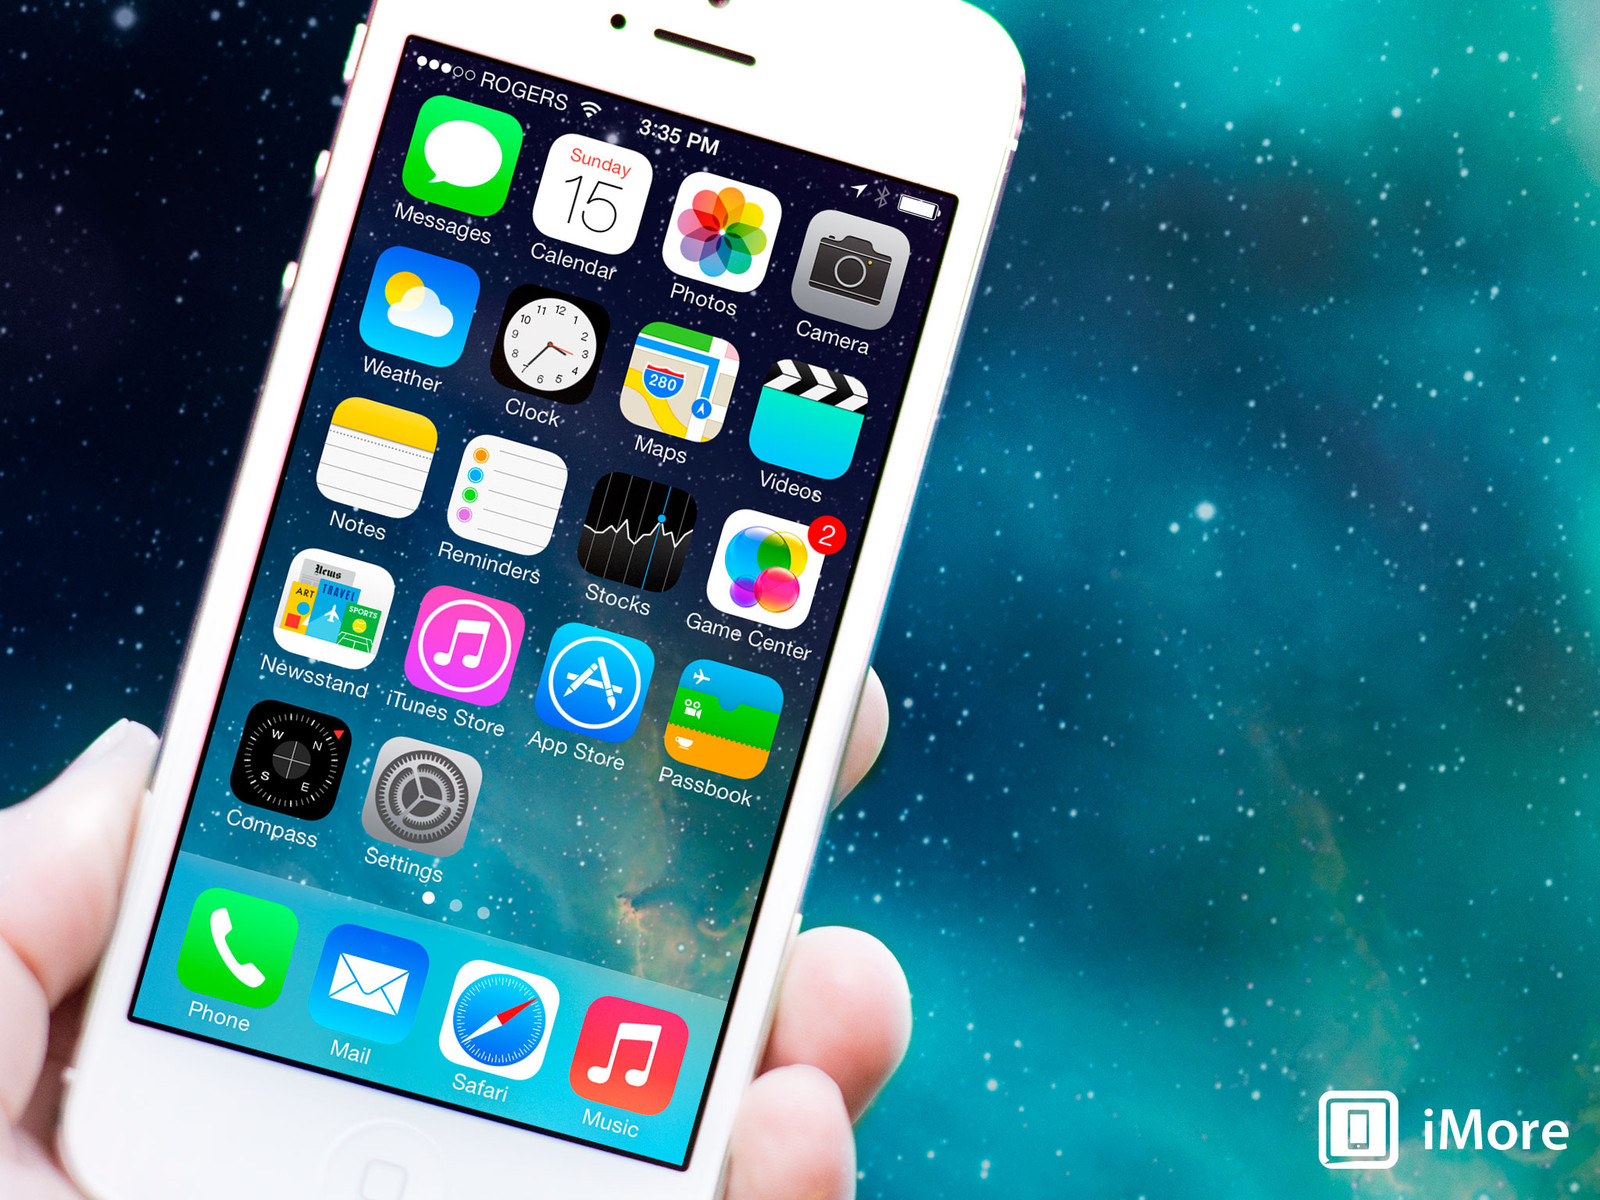 Modojo | What's Going On With the iOS 8 Update?